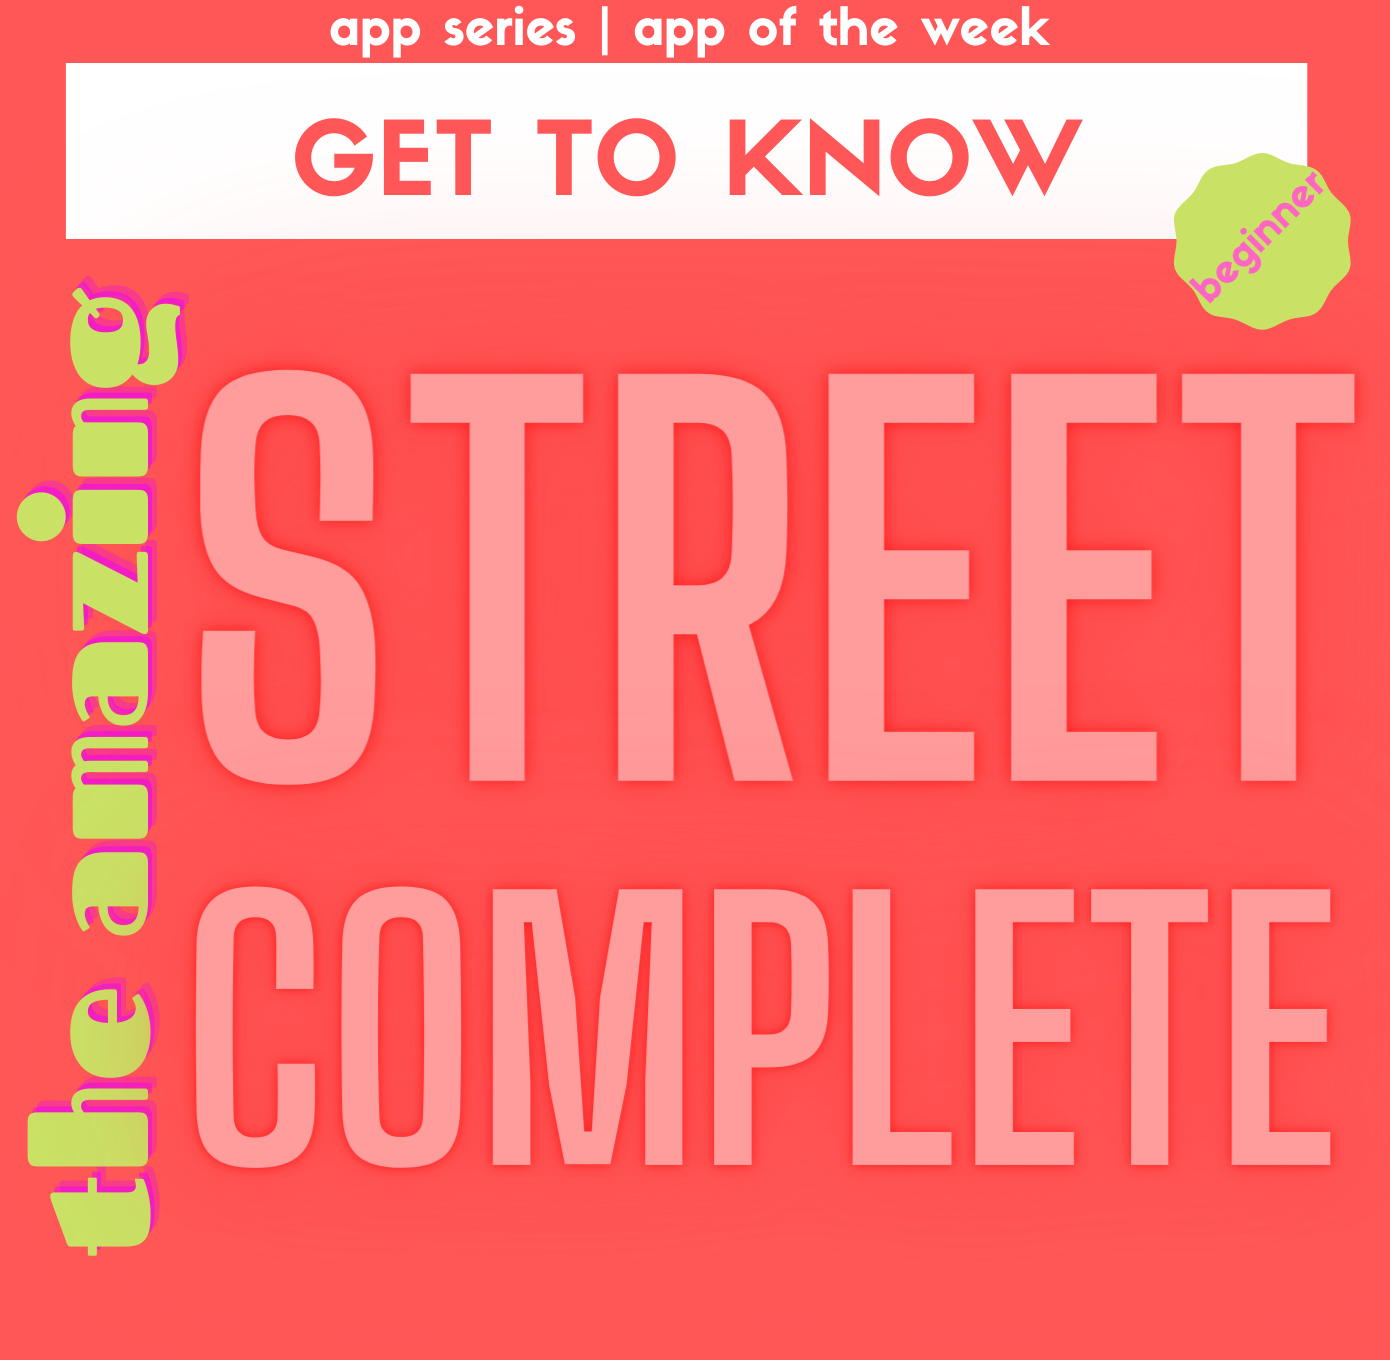 [App-Series] Get to know: StreetComplete